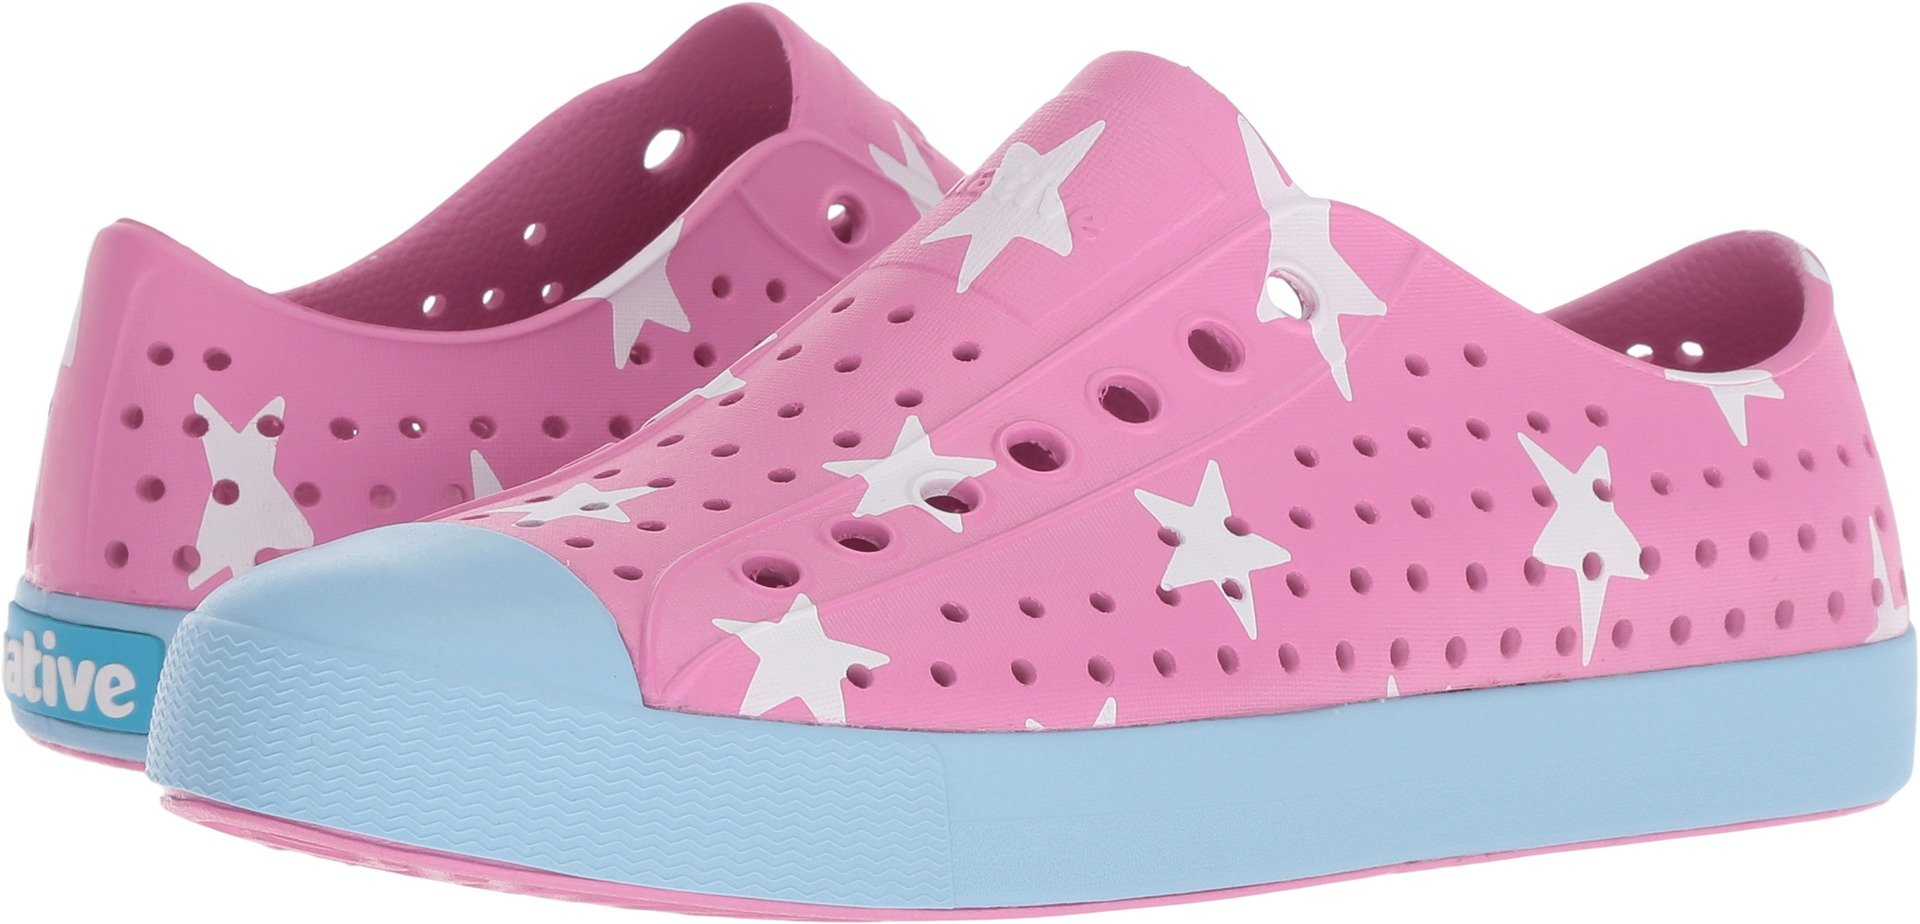 Native Shoes Jefferson Water Shoe, Malibu Pink/Sky Blue/Big Star, 9 Men's M US